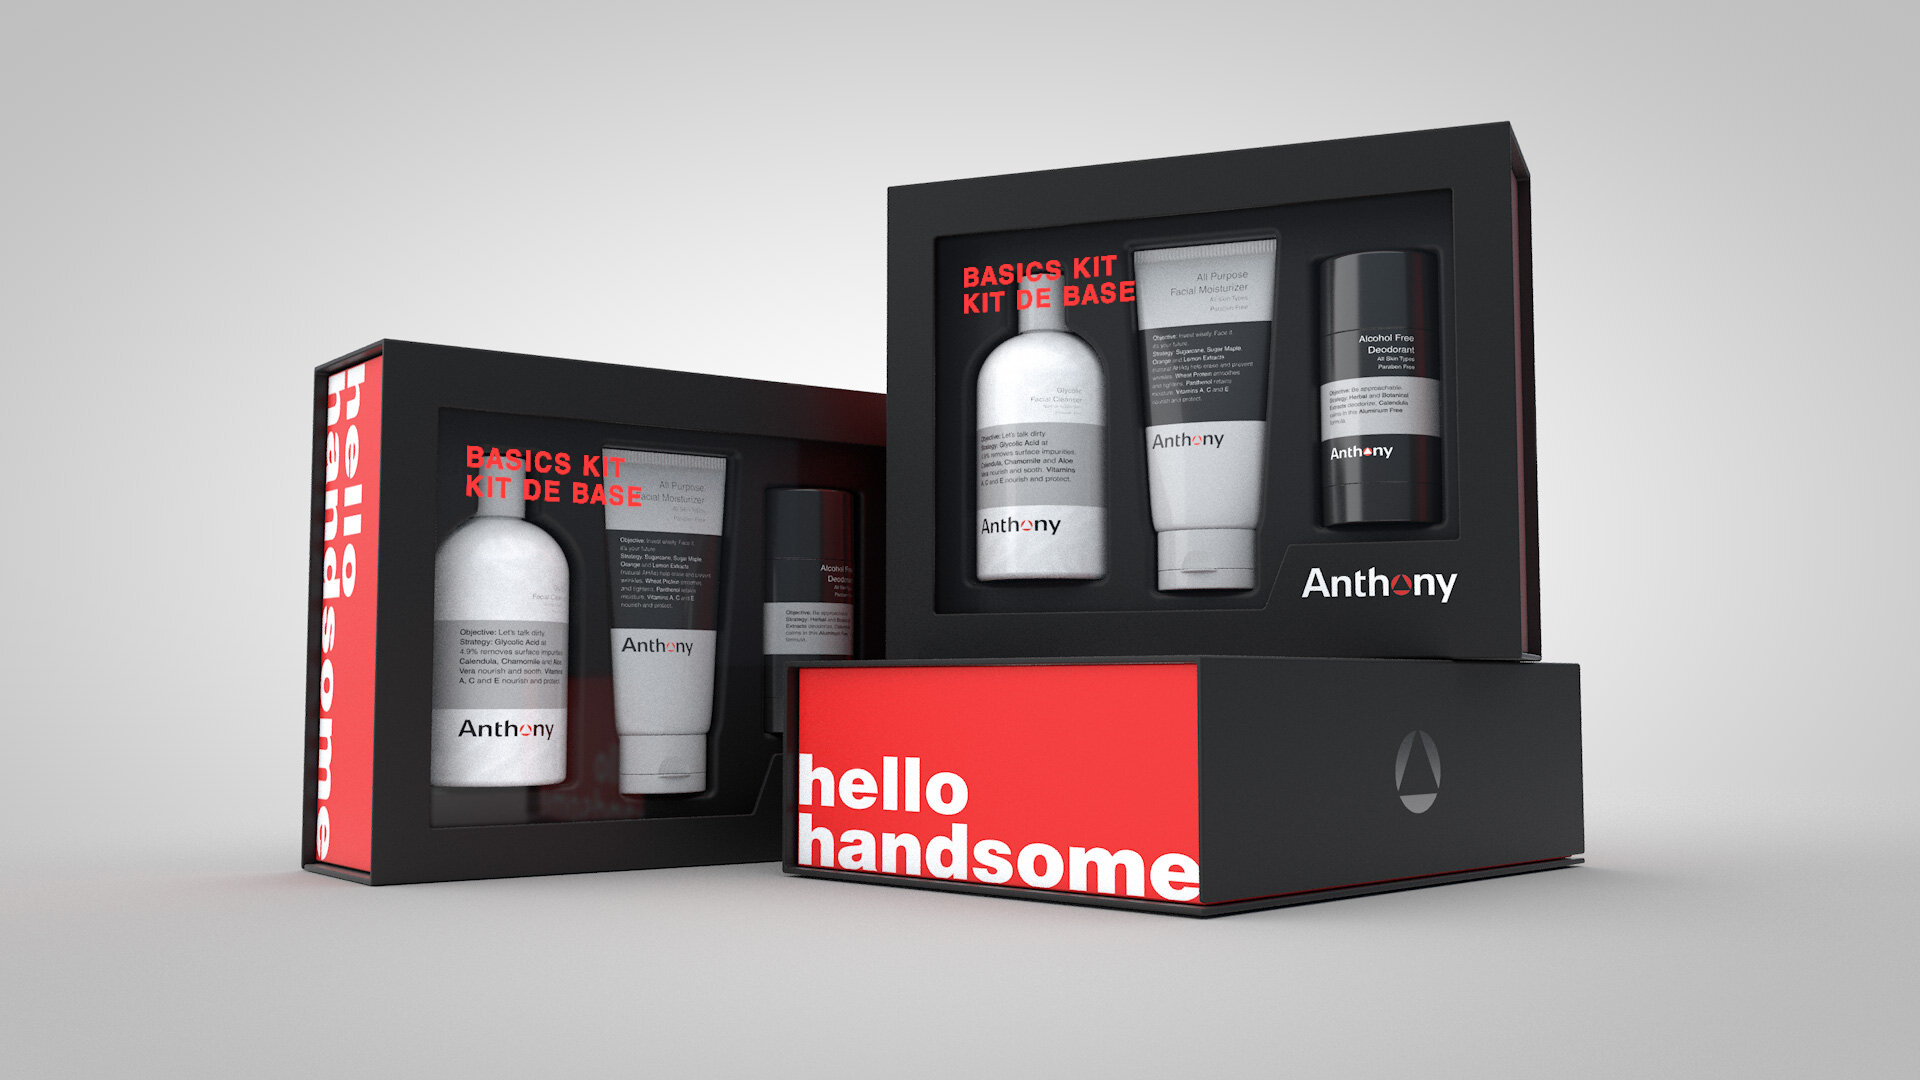 #1 Best selling men's holiday gift set in Nordstrom for 2018. - See the project: ANTHONY